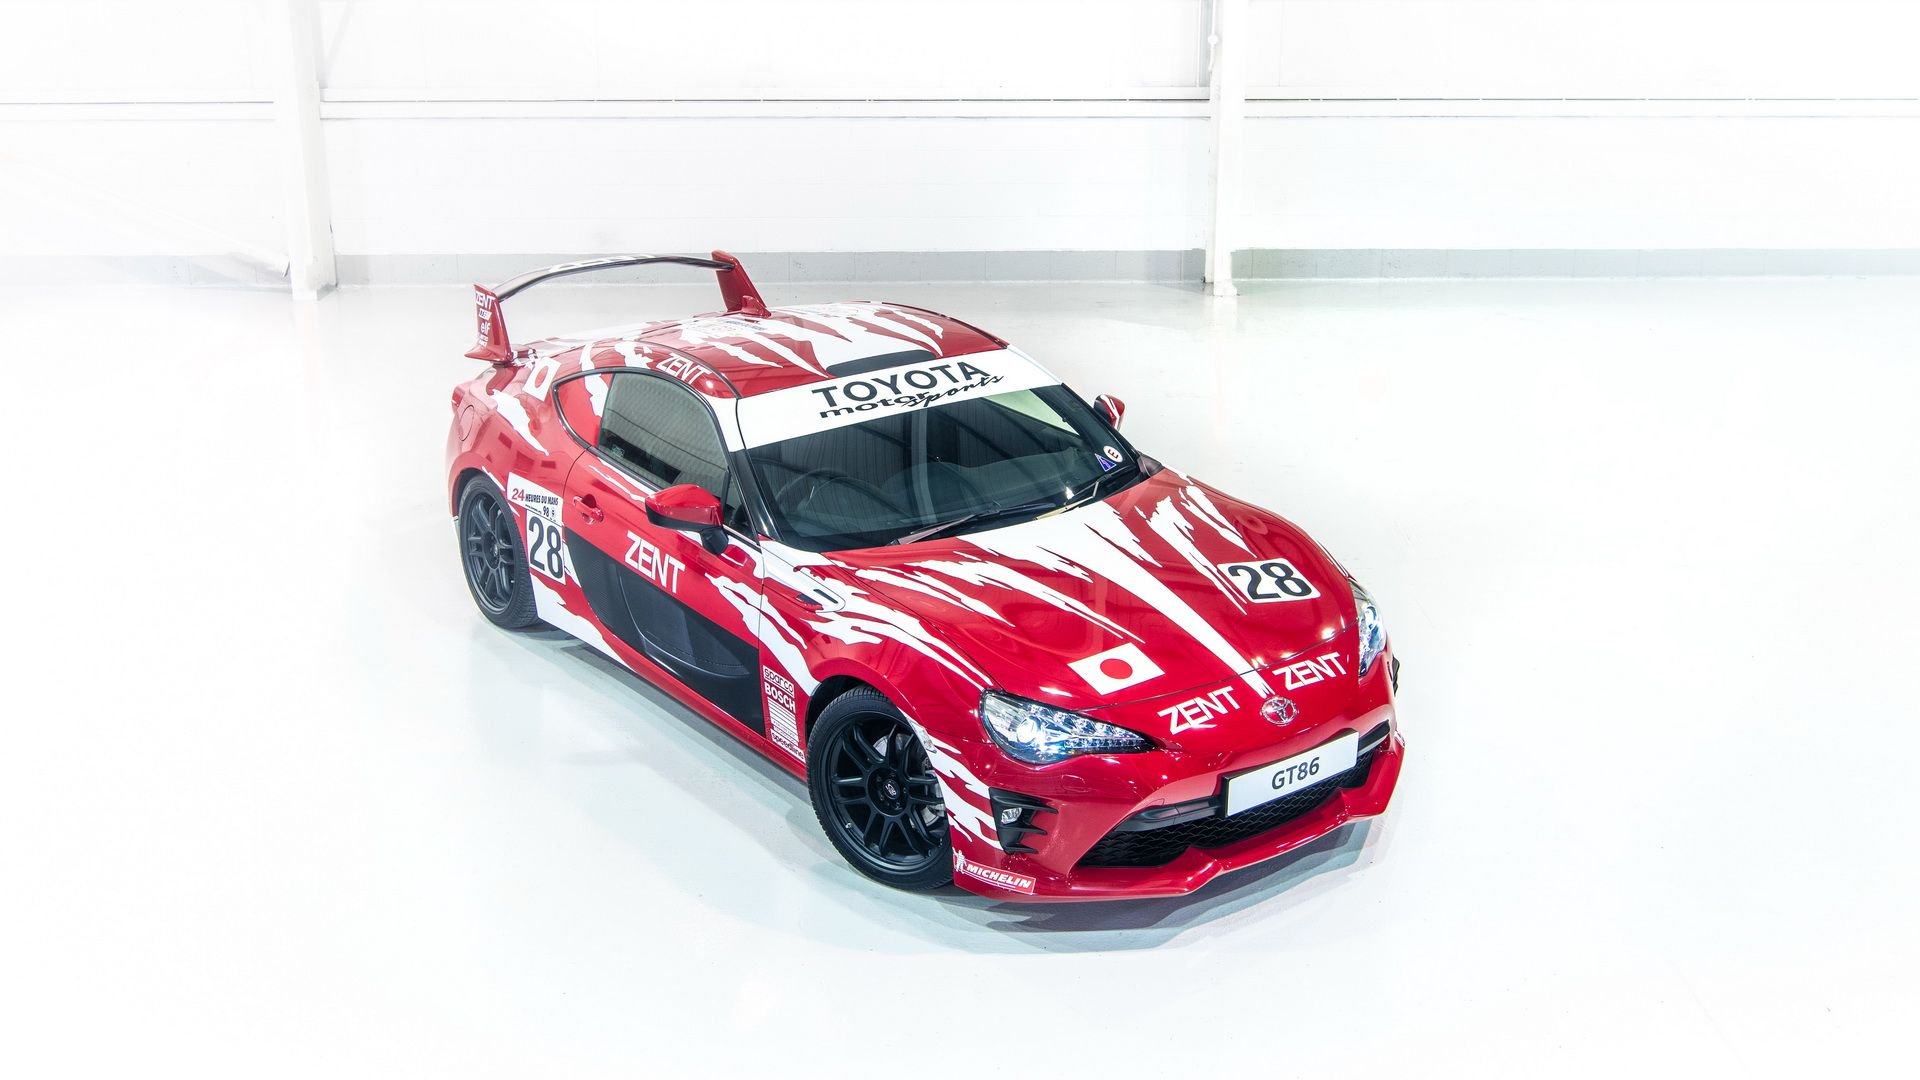 toyota-gt86-heritage-livery-24-hours-of-le-mans-25